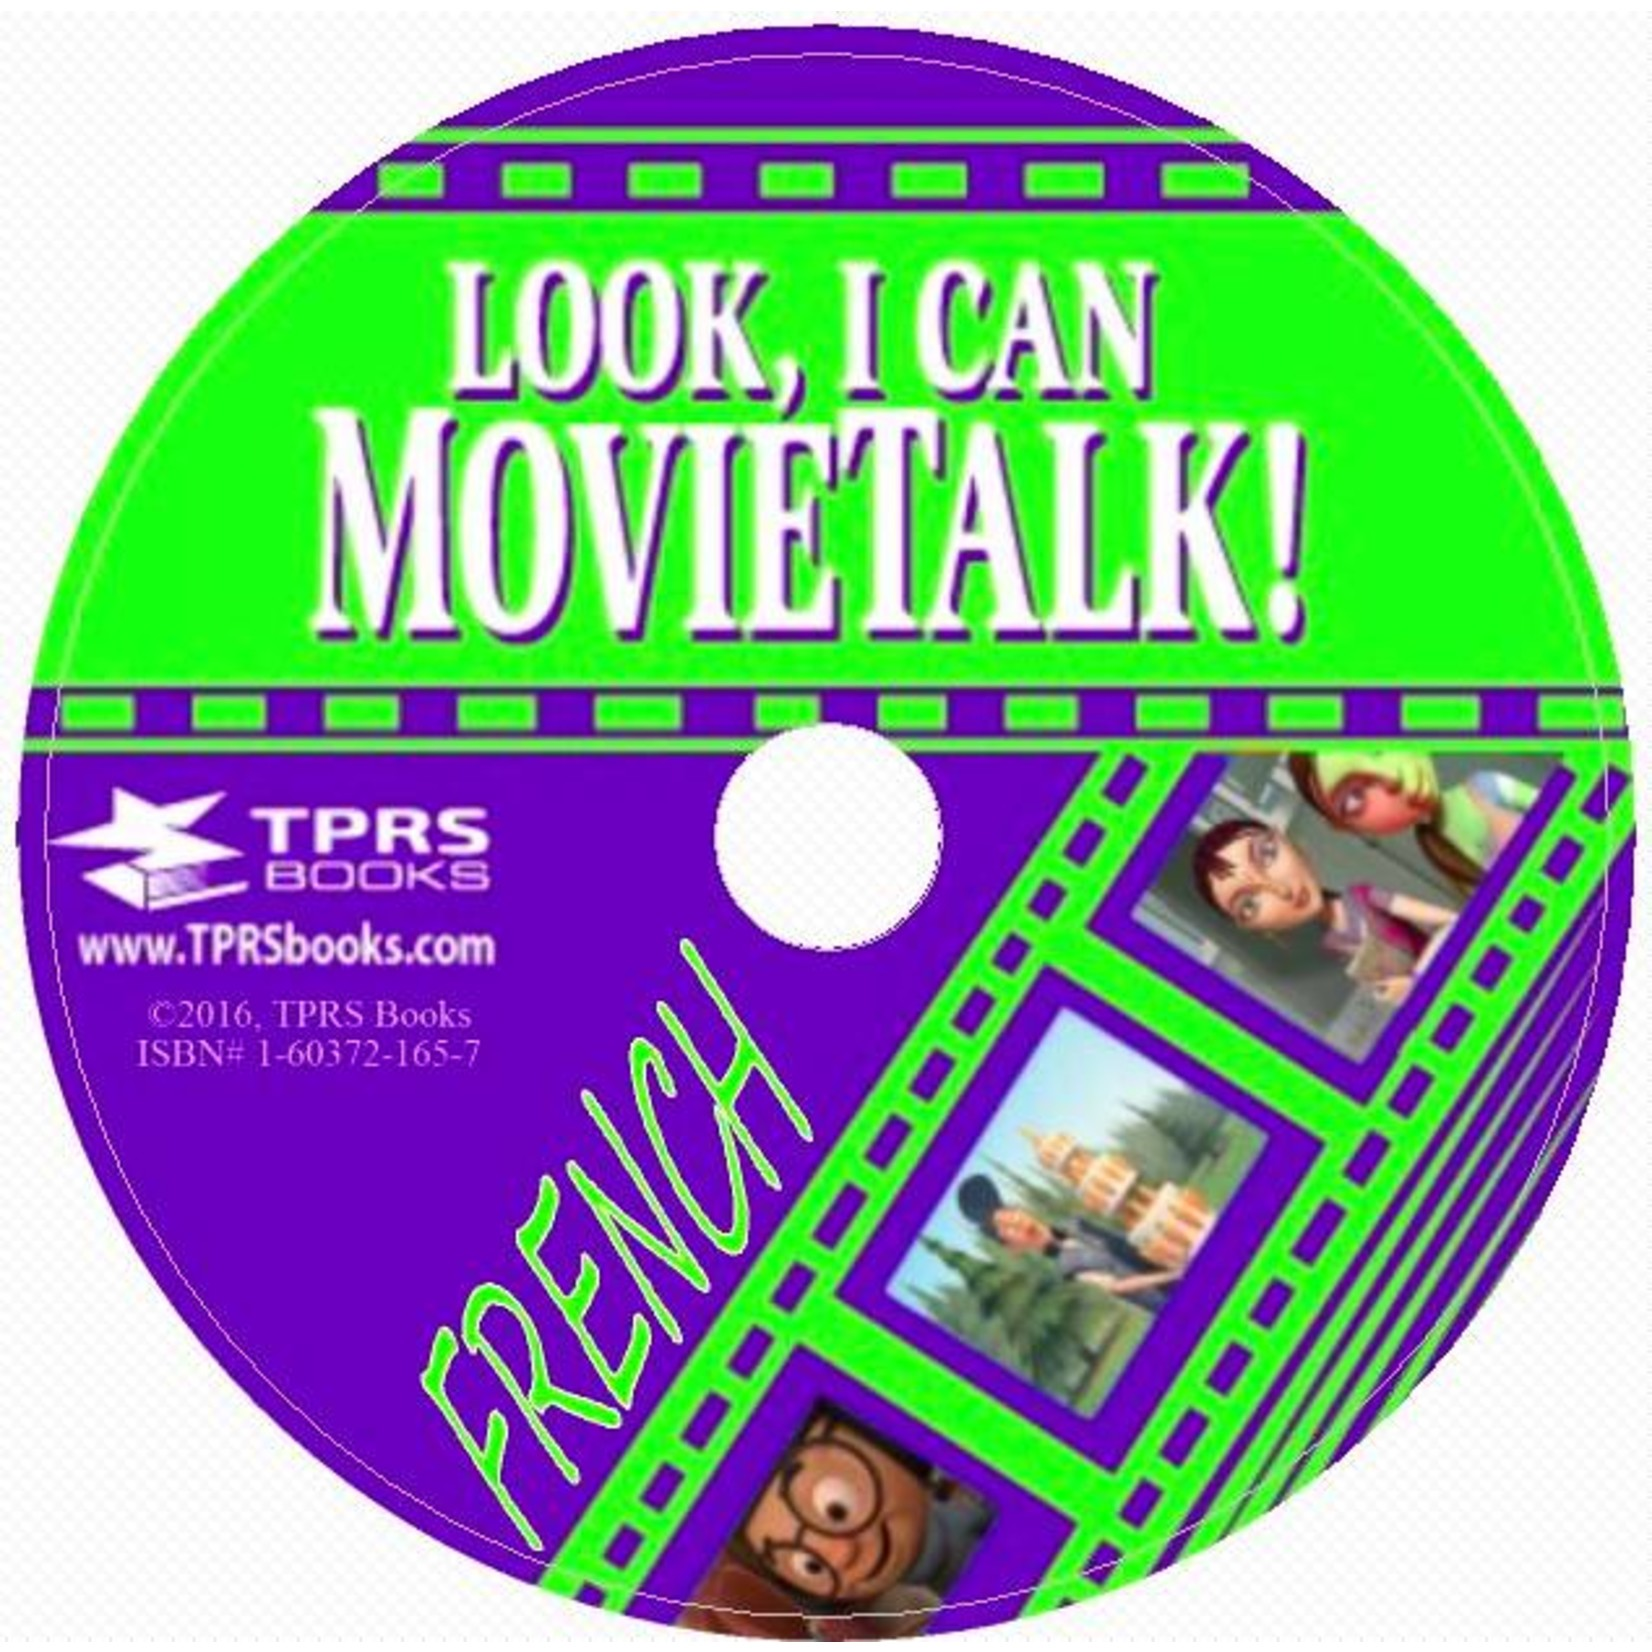 TPRS Books Look, I Can Movietalk! - French